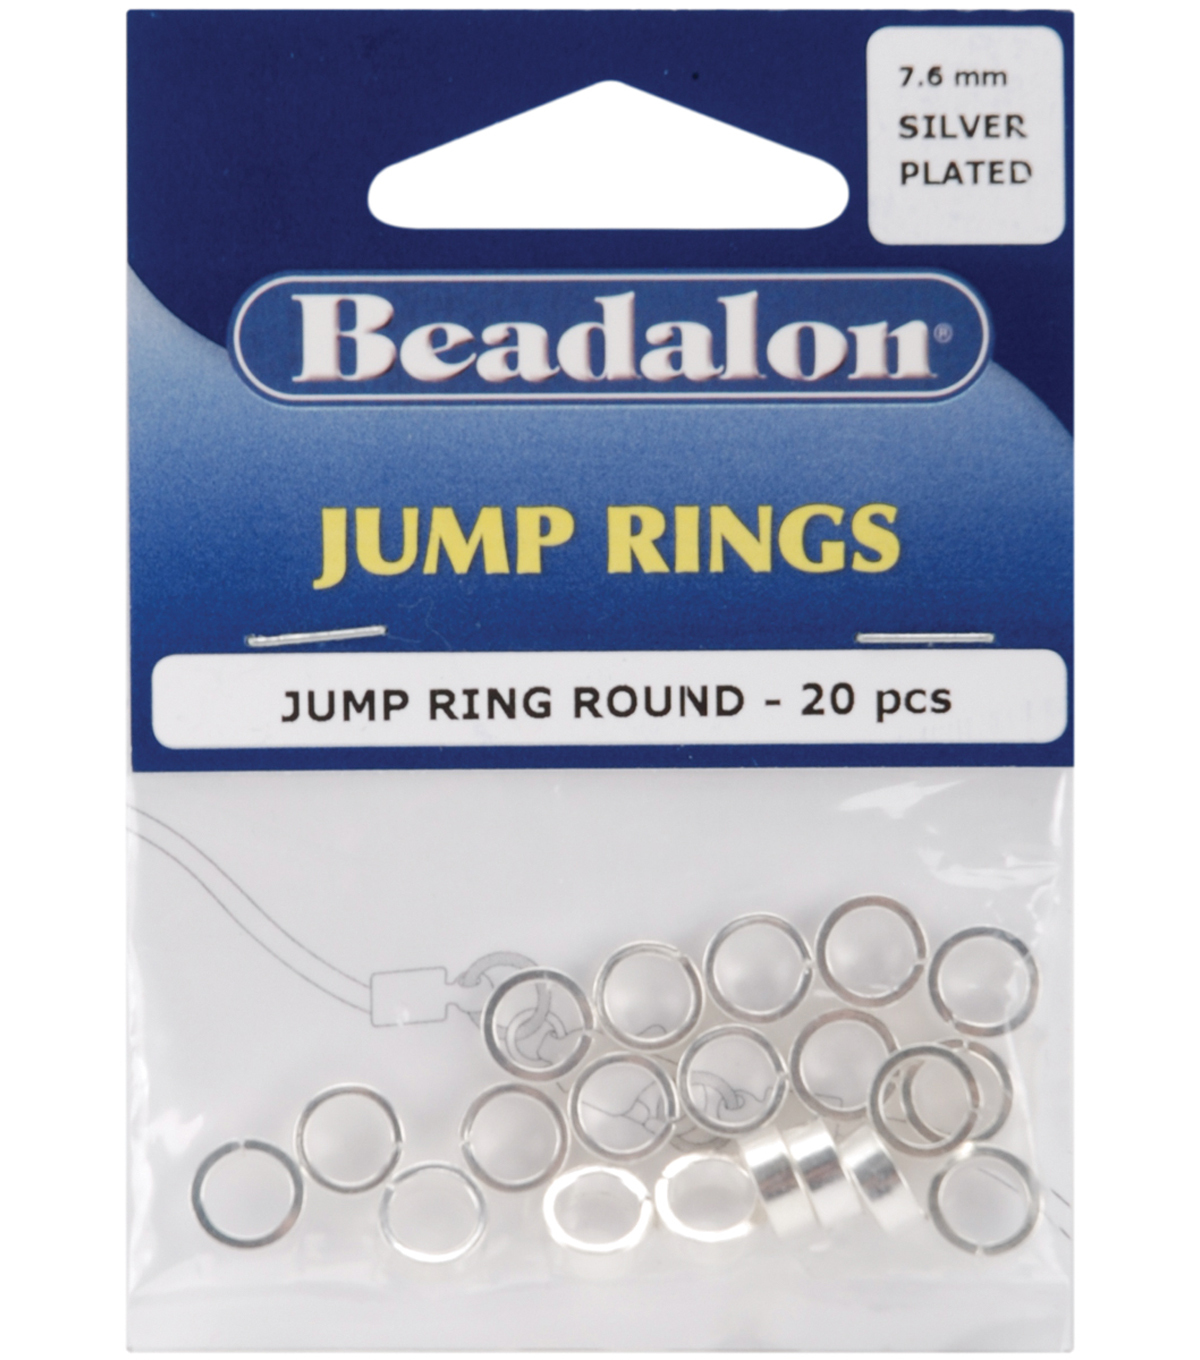 Beadalon Jump Rings 7.6mm 20PK-Silver